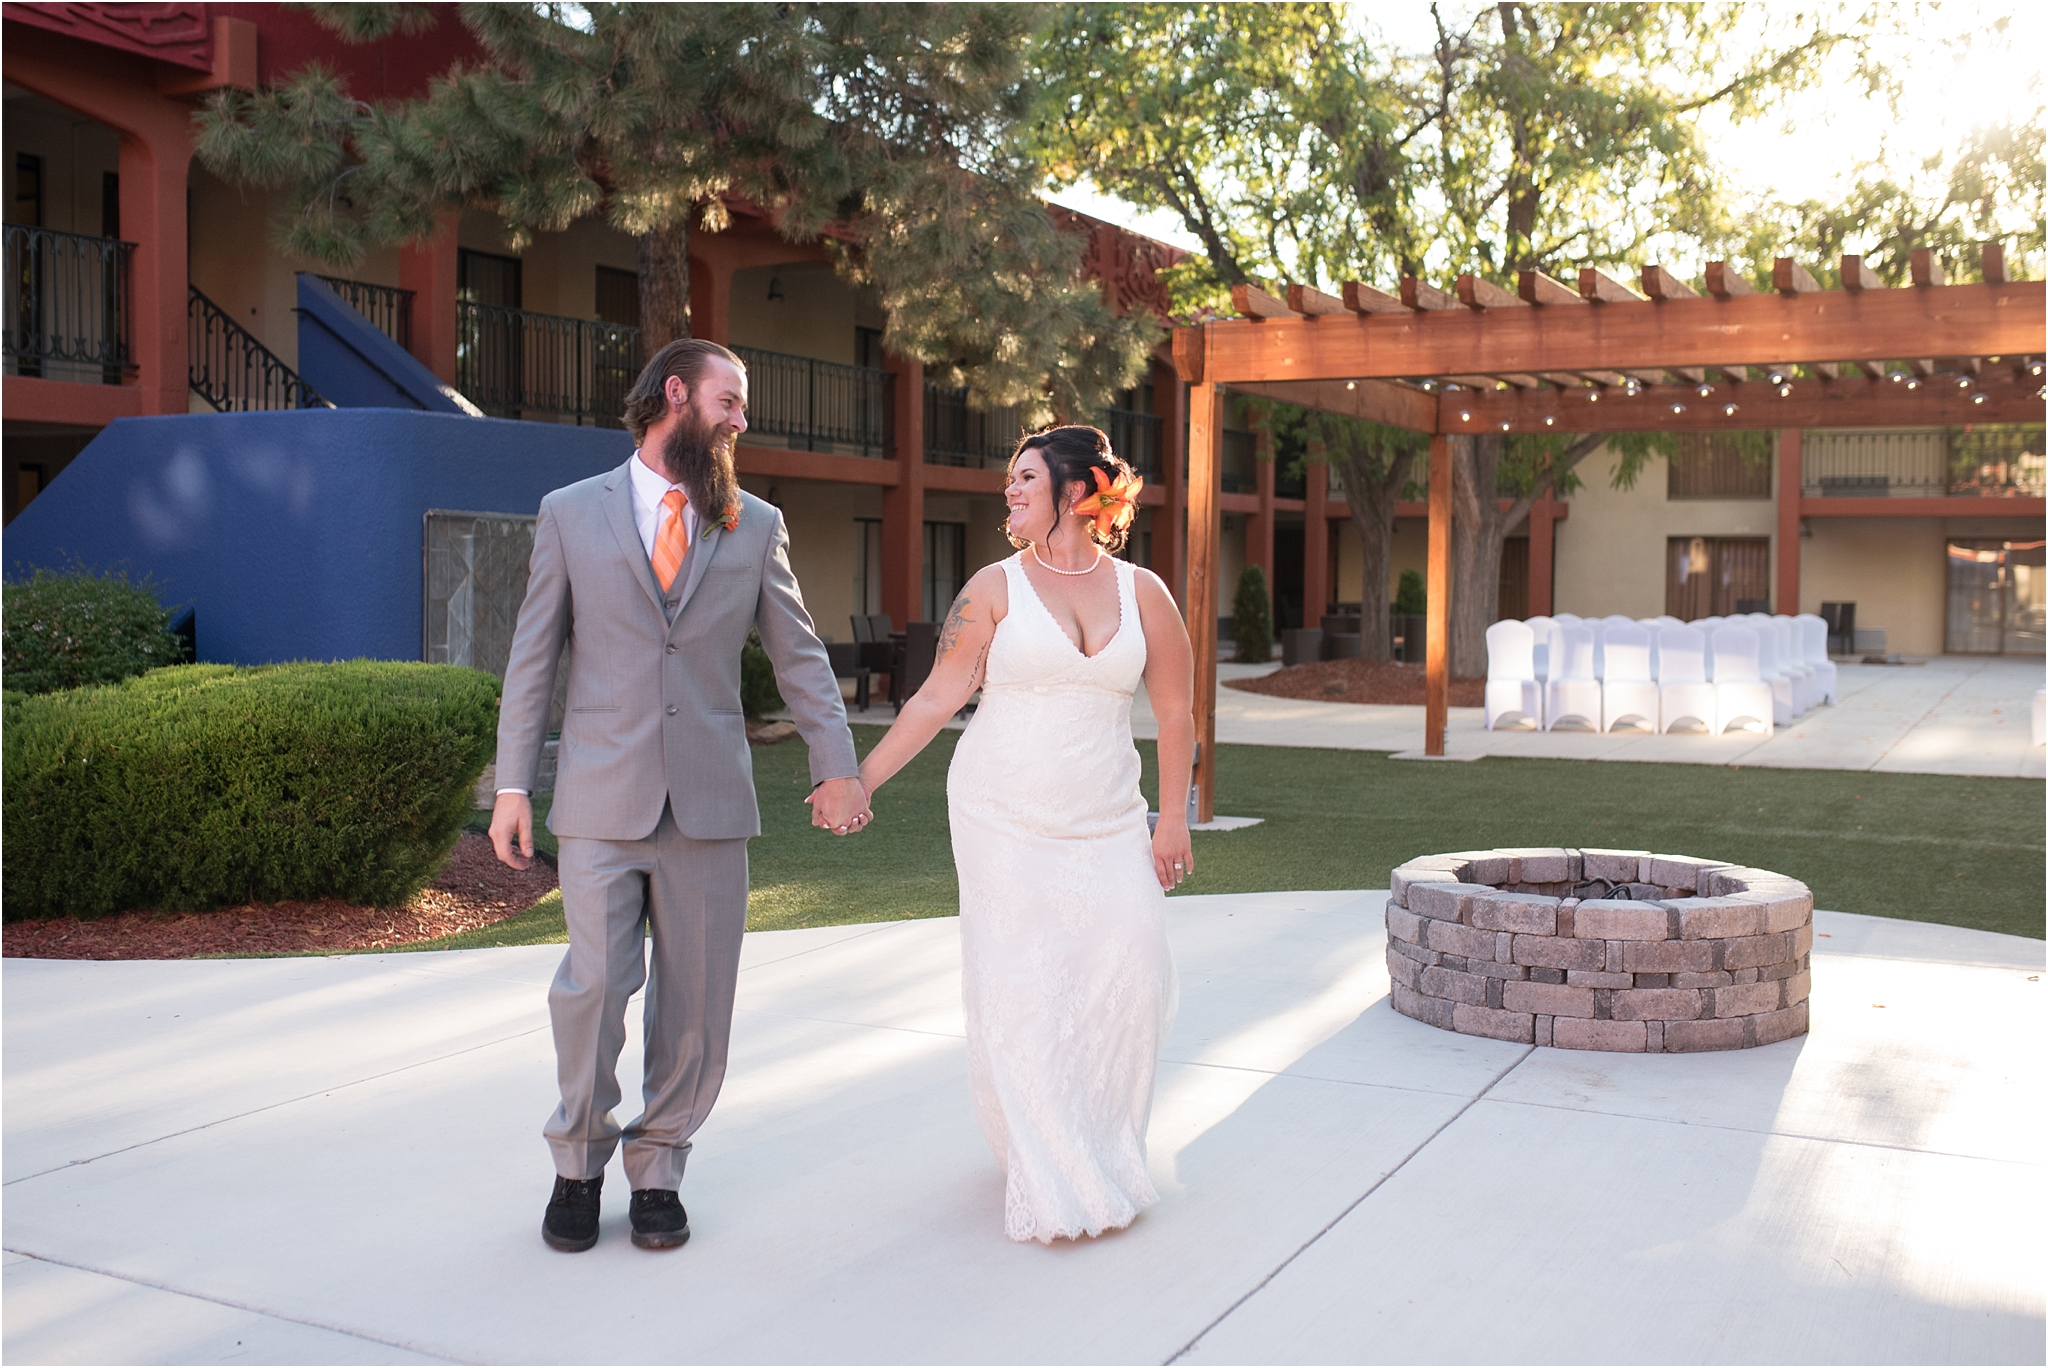 kayla kitts photography - albuquerque wedding photographer - new mexico wedding photographer - desination wedding photographer - cabo wedding photographer_0023.jpg